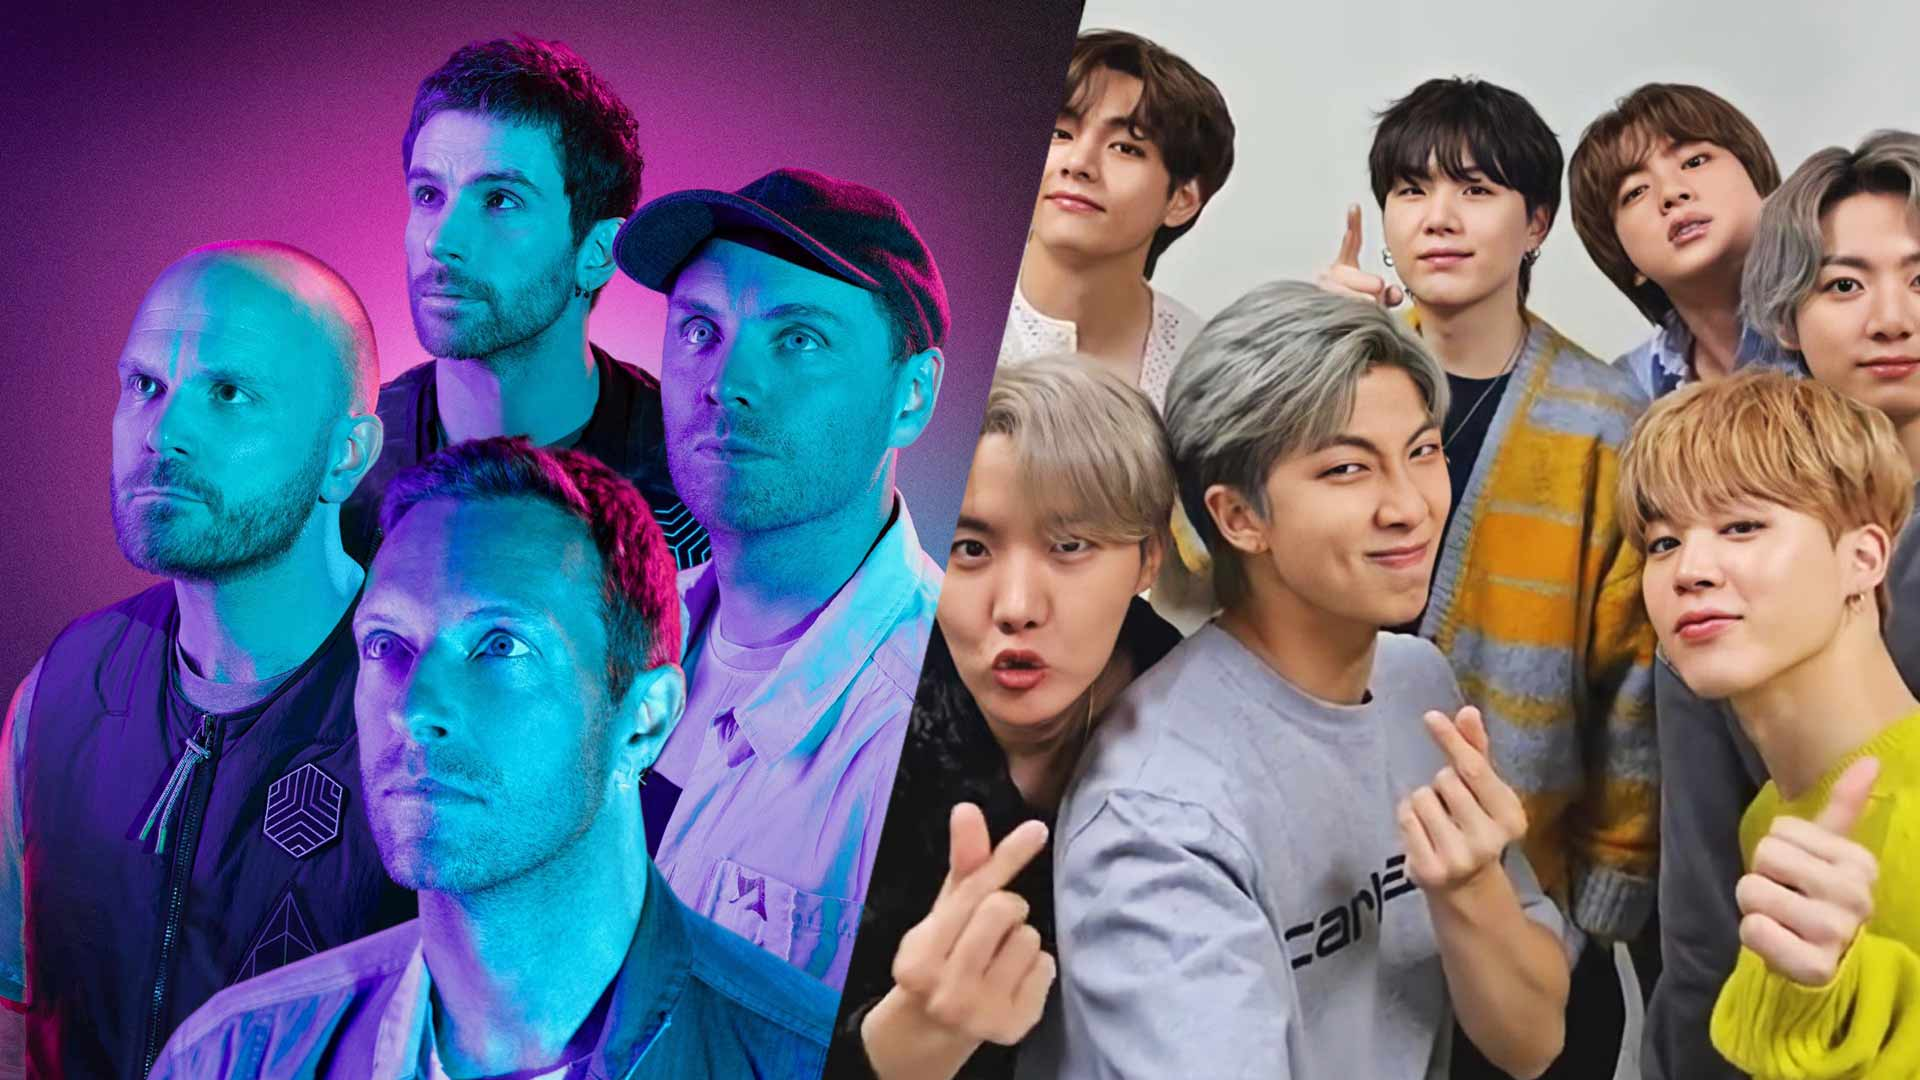 9-16-2021-COLDPLAY-COLLABORATES-WITH-BTS-FOR-UPCOMING-SINGLE